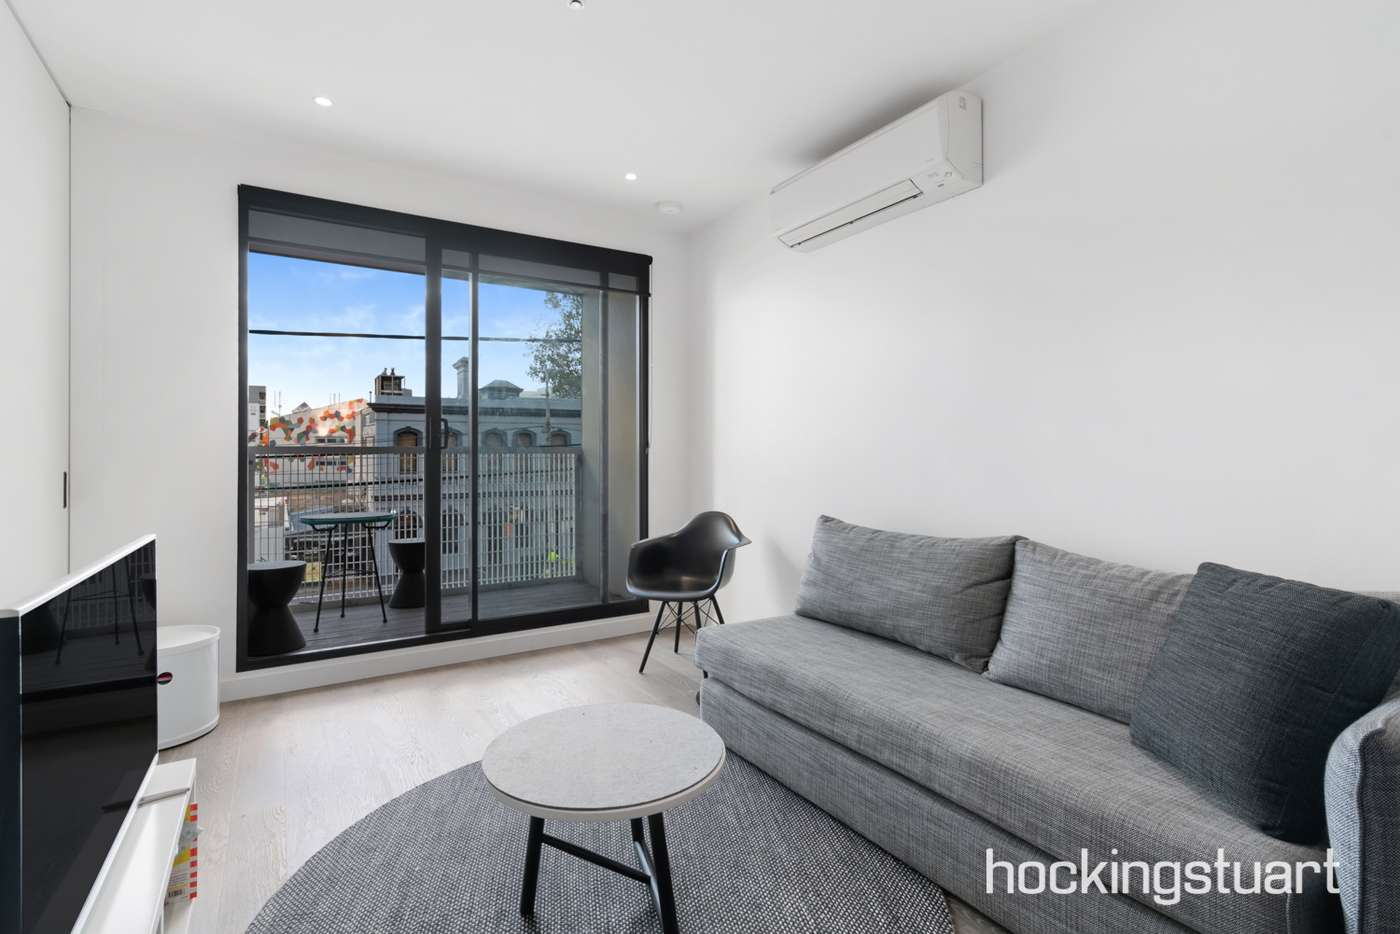 Main view of Homely apartment listing, 101/518 Swanston Street, Carlton VIC 3053